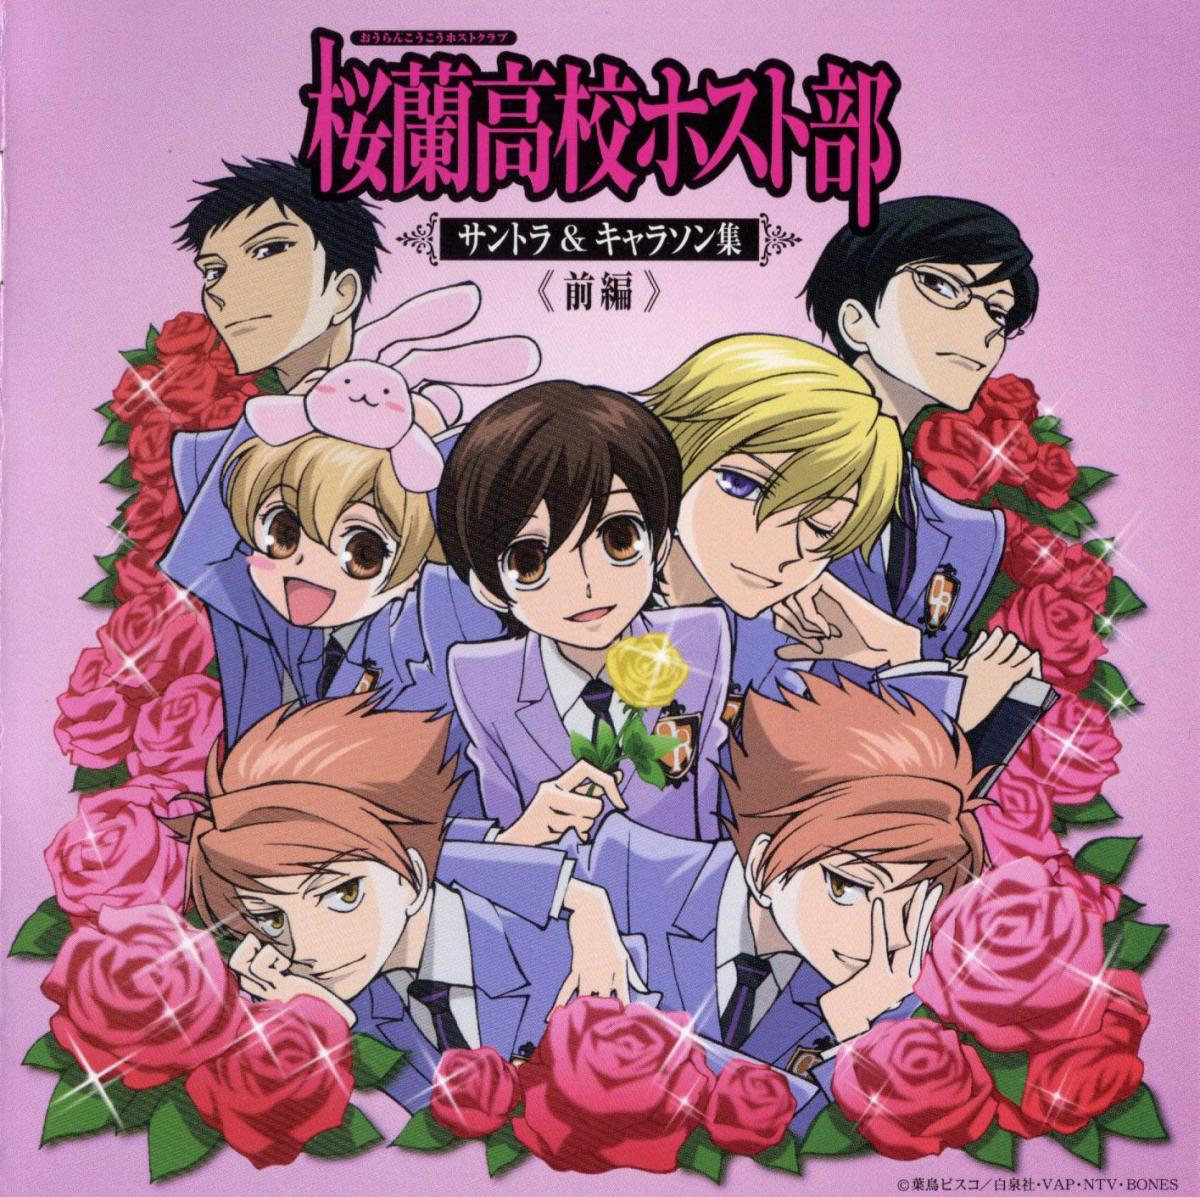 Ouran High School Host Club Anime Opening & Ending Theme Songs (English & Japanese Versions) With Lyrics